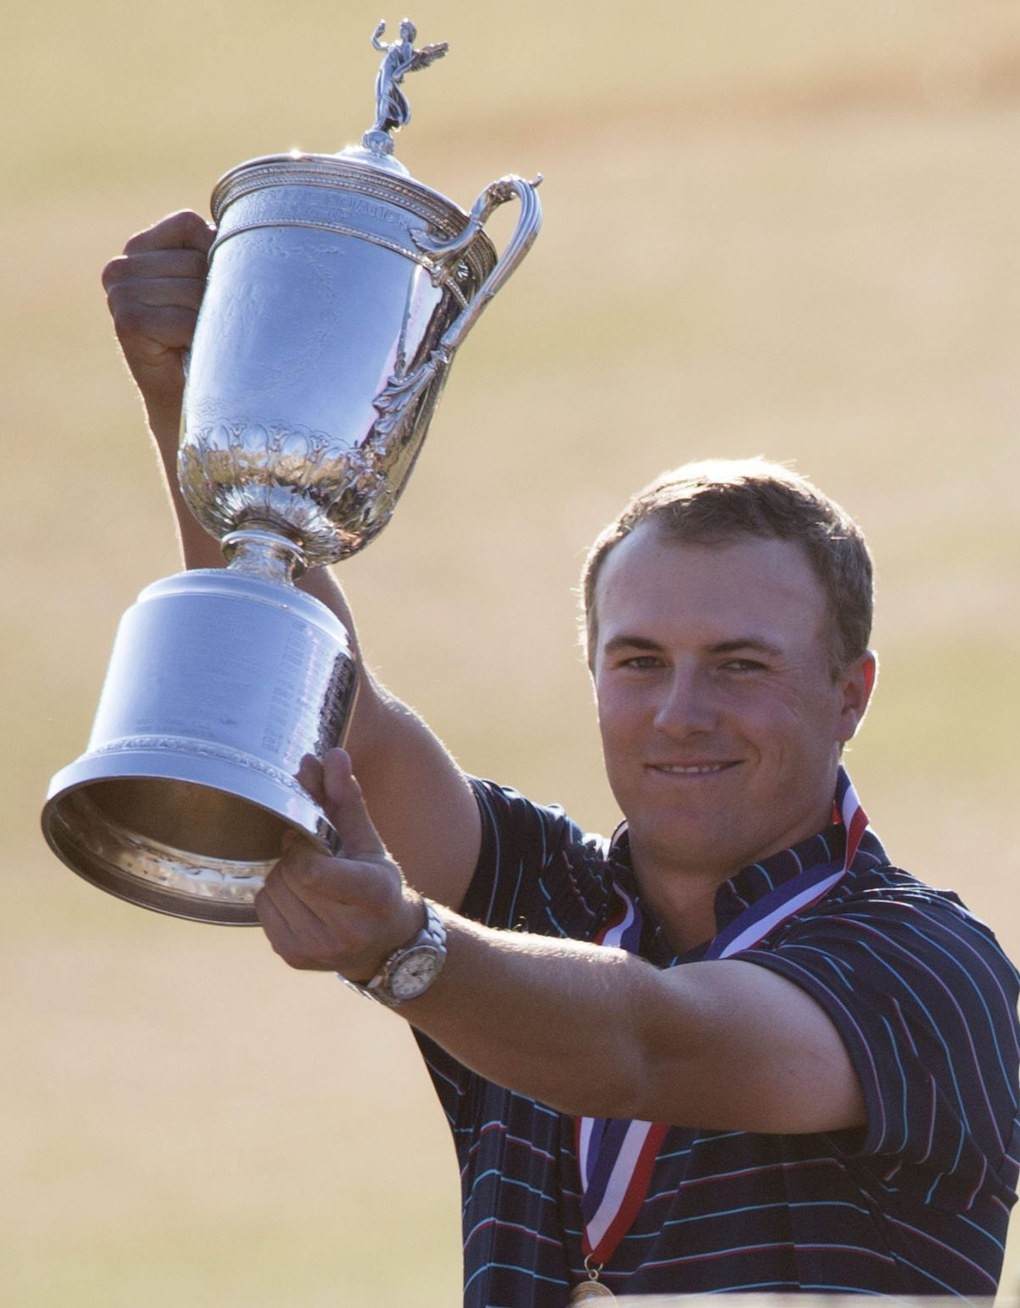 Jordan Spieth holds up the U.S. Open Championship Trophy. (Lindsey Wasson / The Seattle Times)